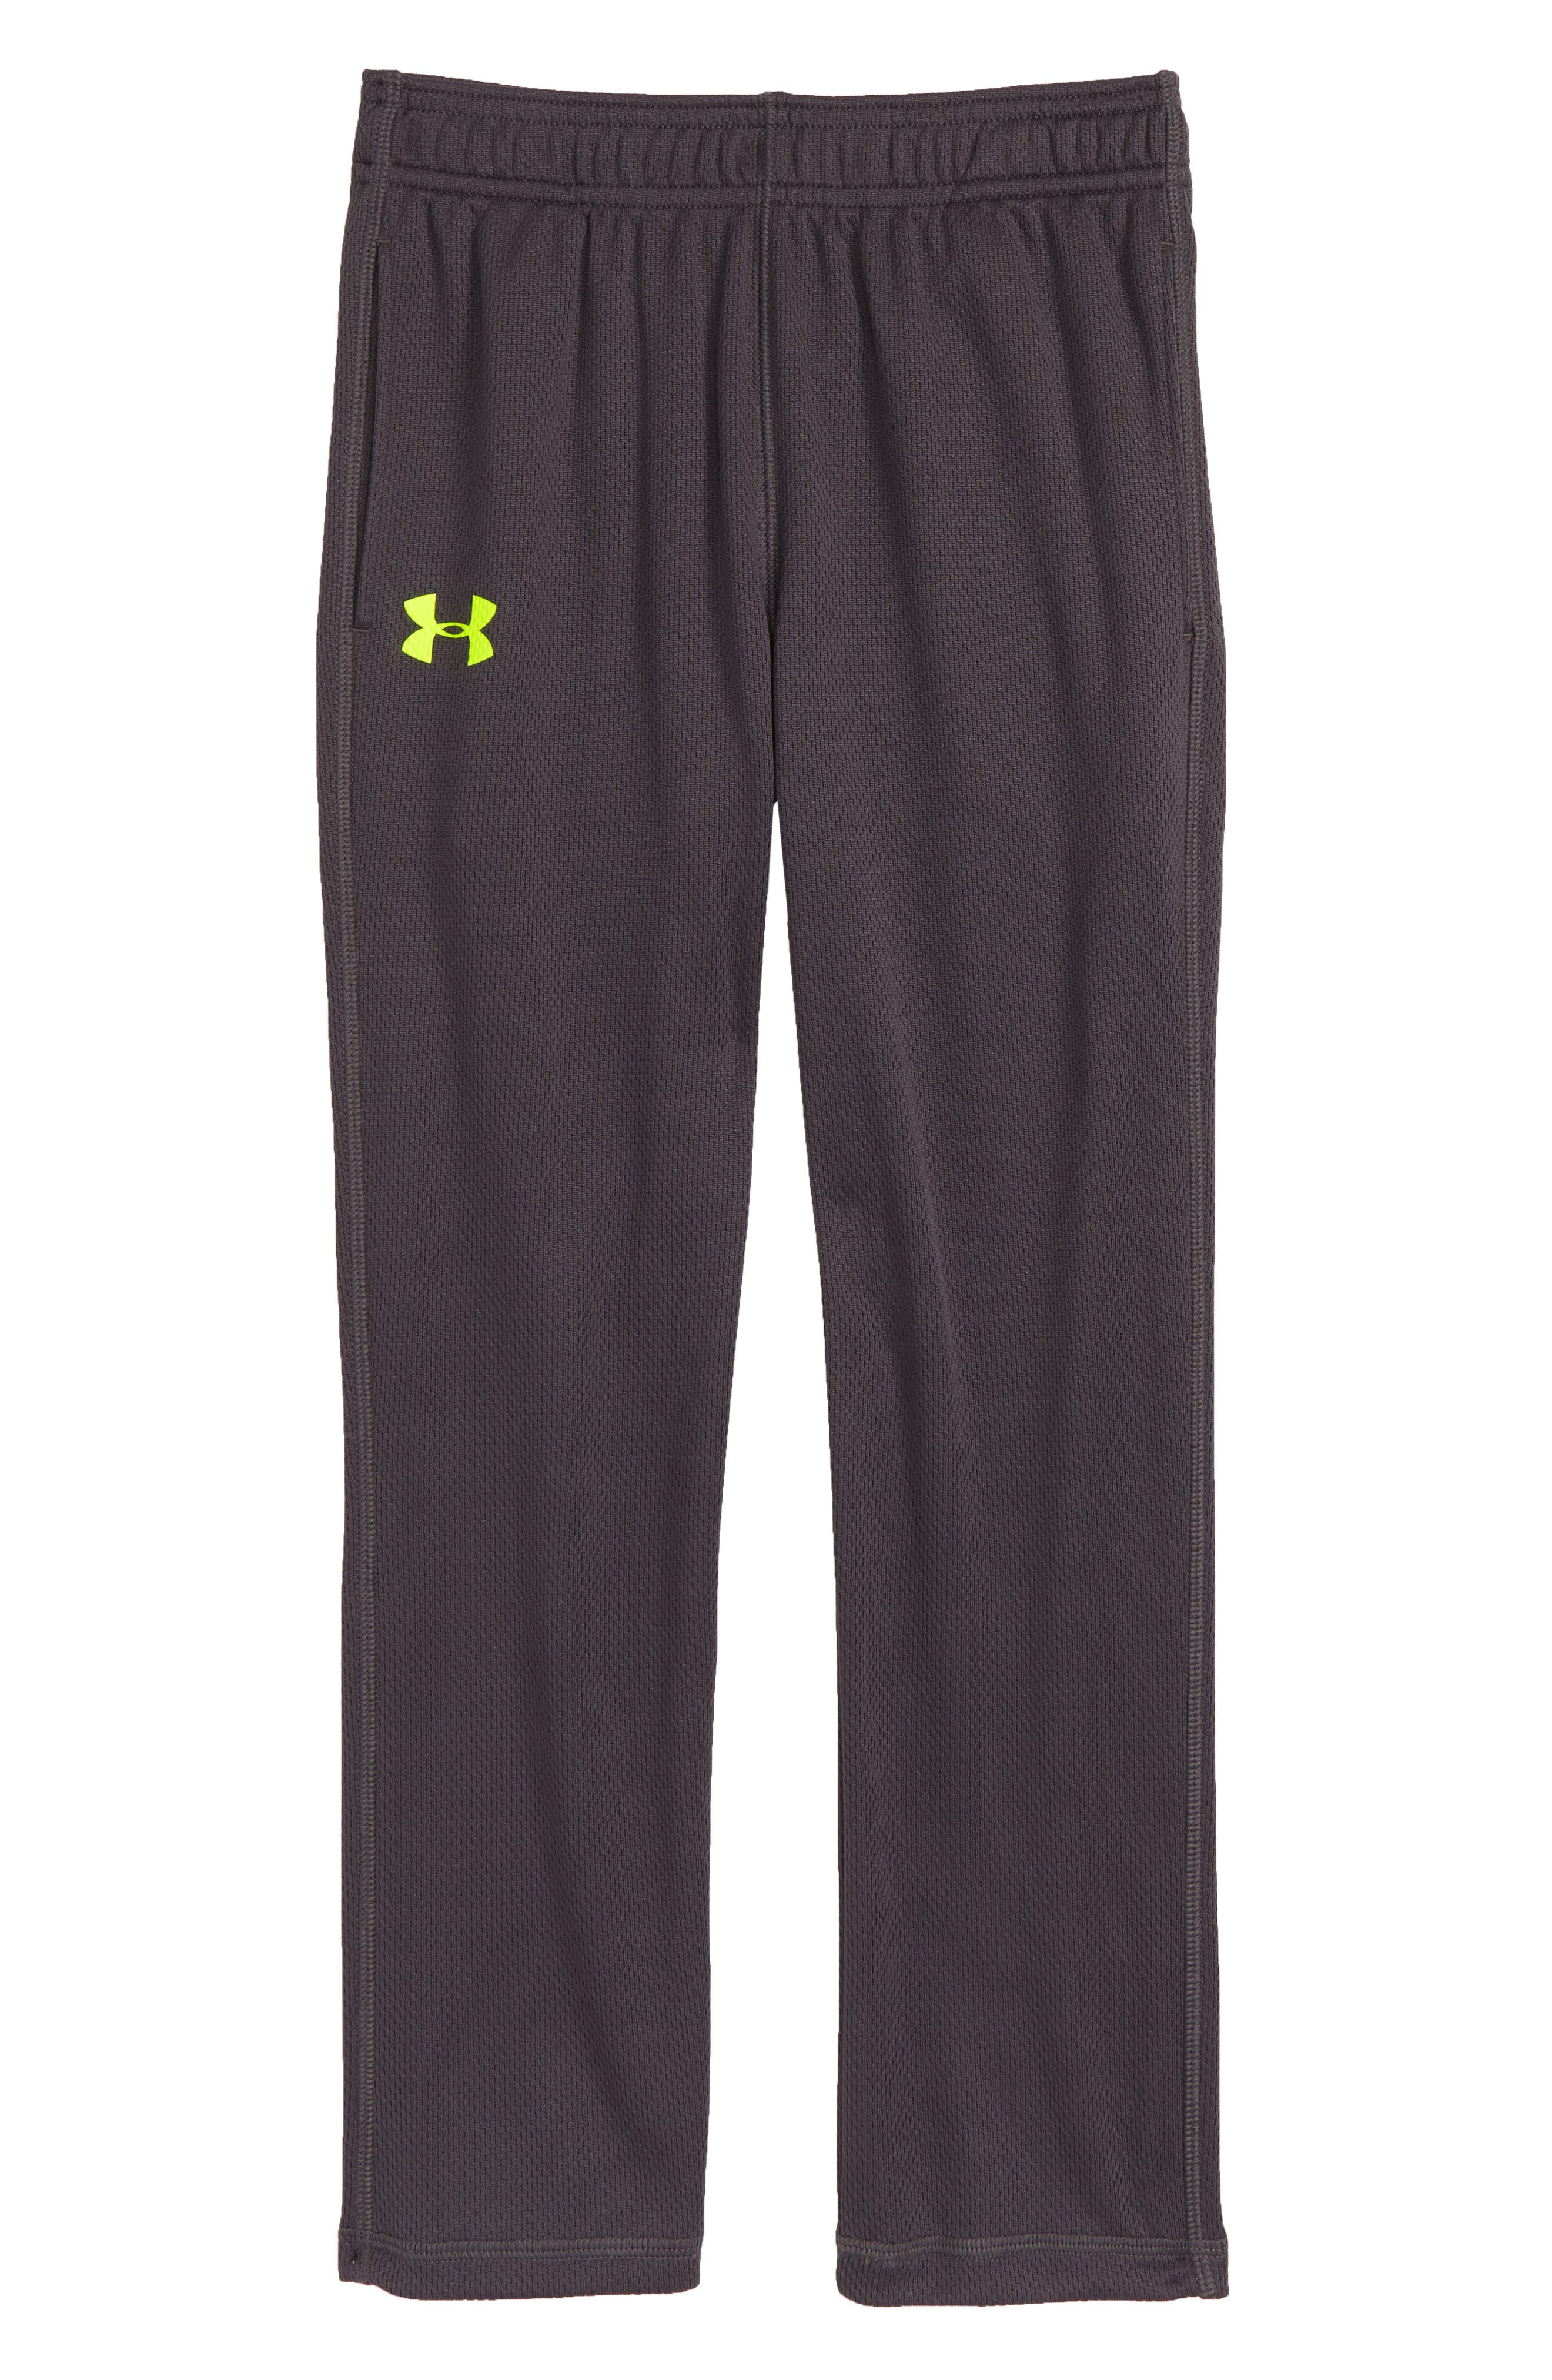 Under Armour Boys Brute Pant